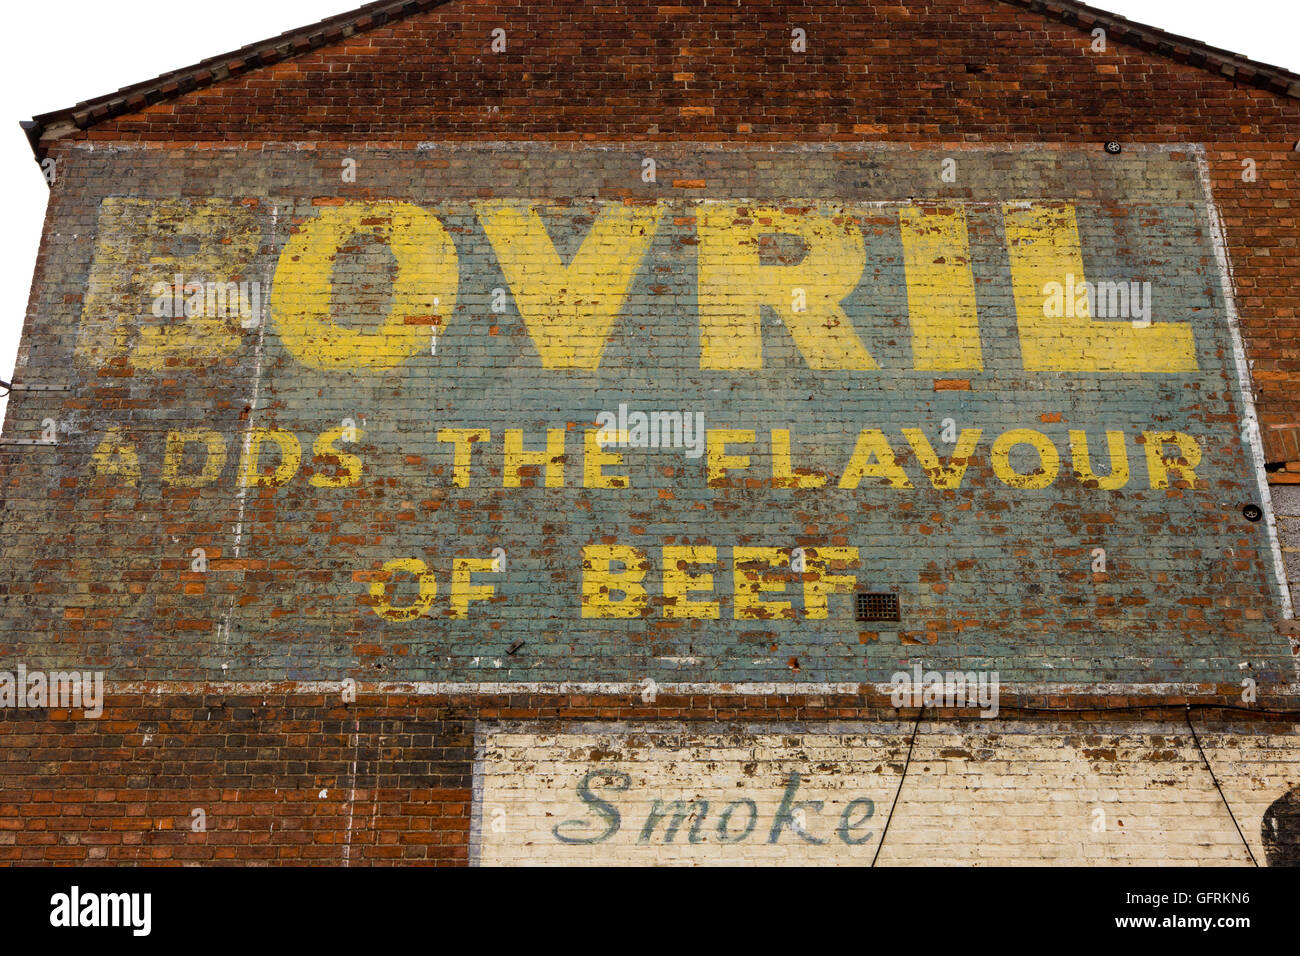 UK, England, Bedfordshire, Bedford, Western Street, old painted Bovril advertisement on house gable end wall - Stock Image